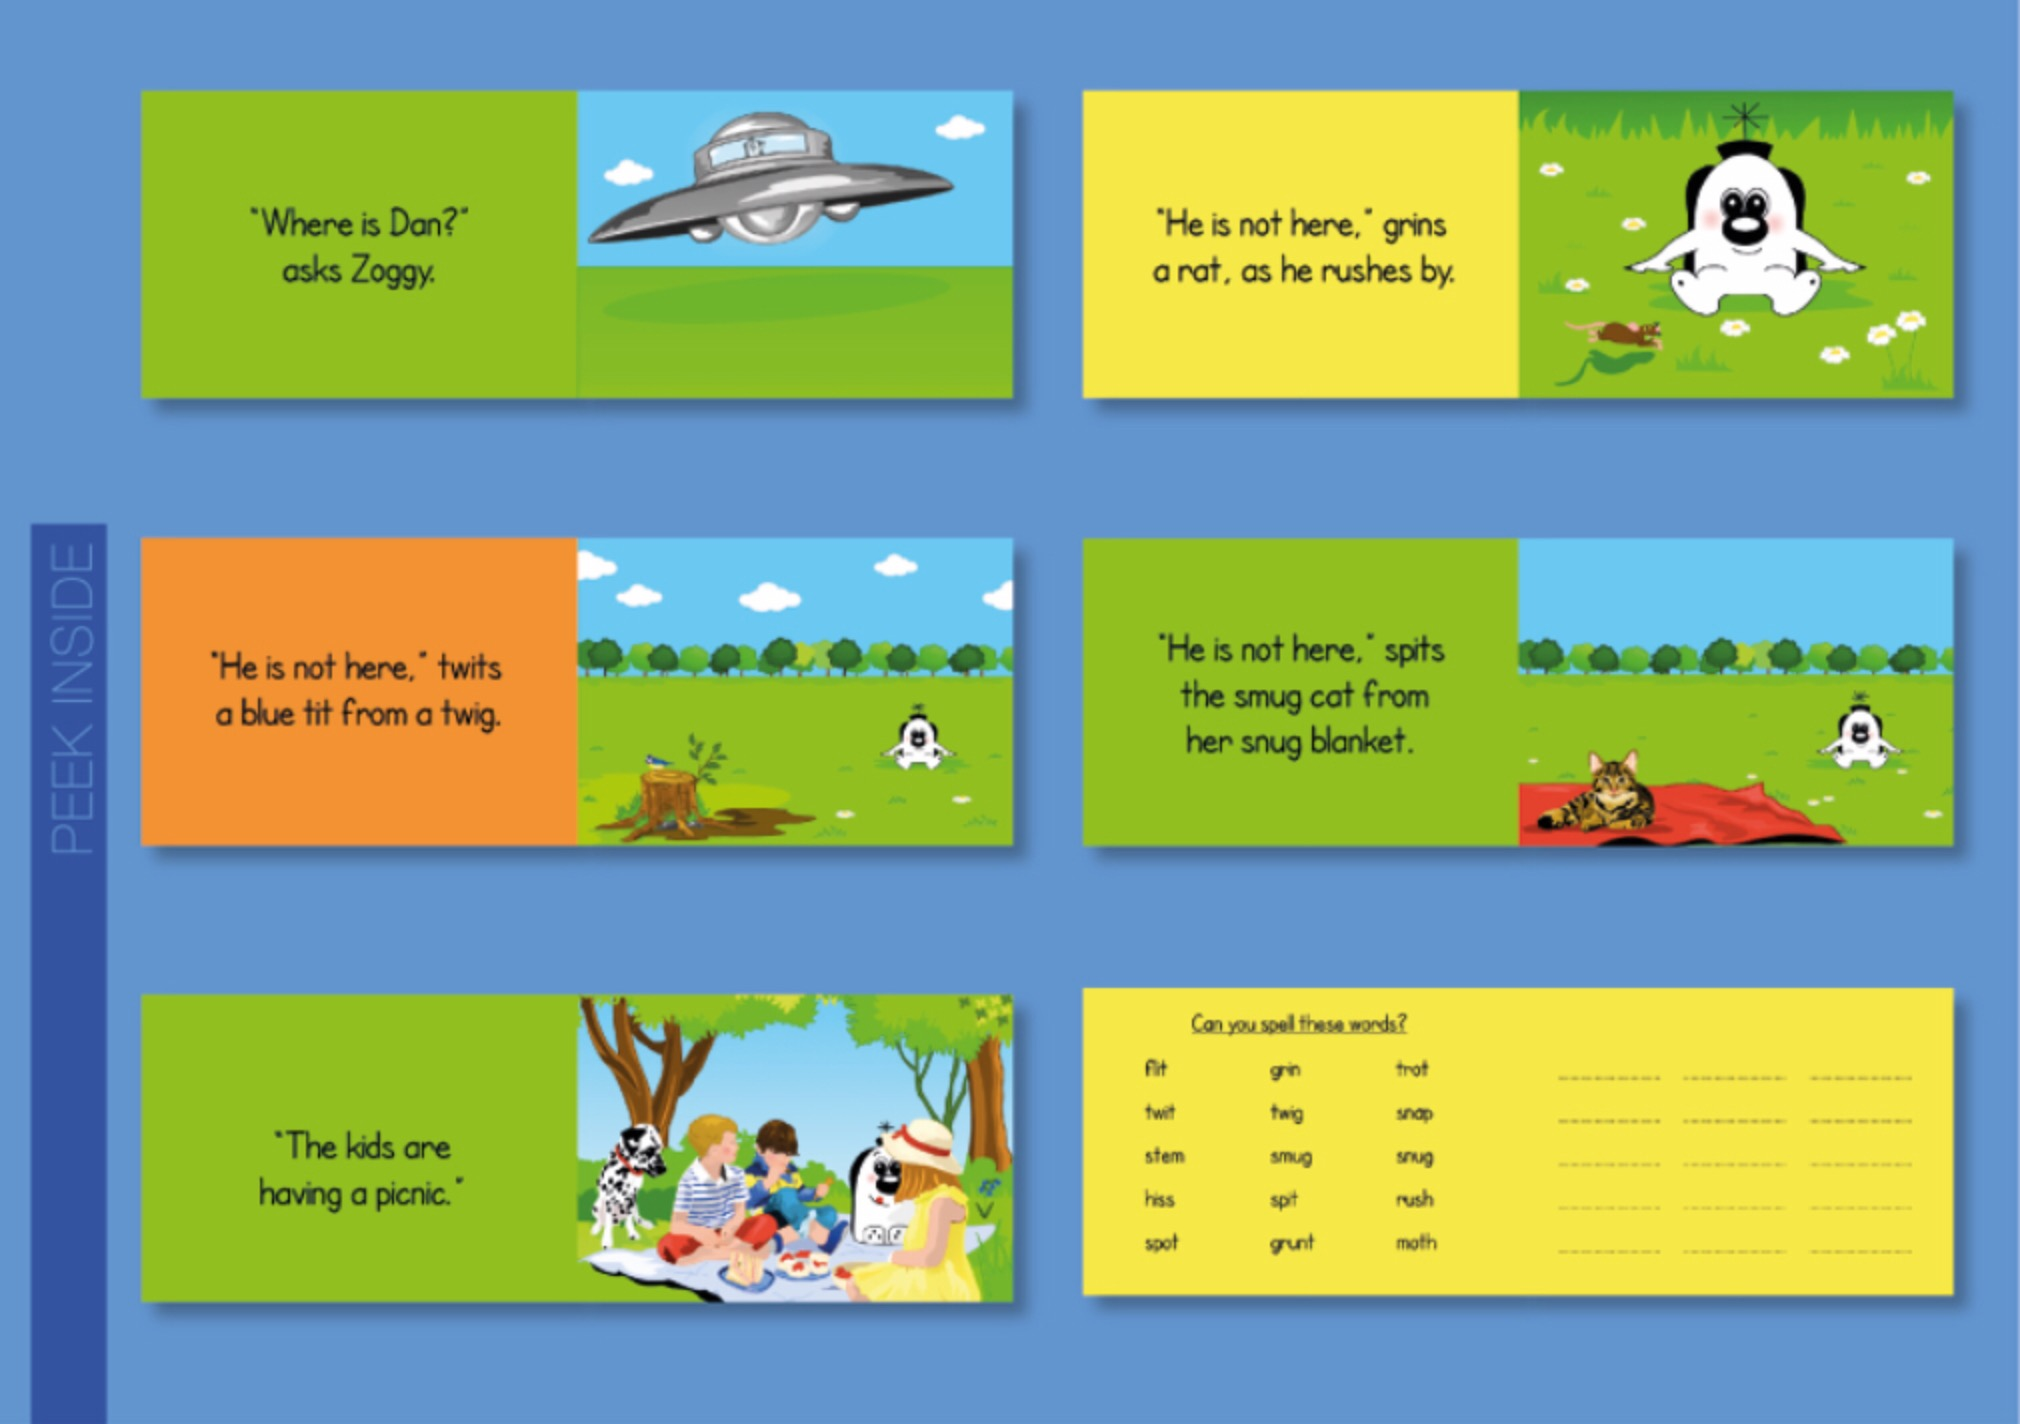 Phonics And Spelling Practice: Initial Consonant Blends & Digraphs (Series 2) Print Edition